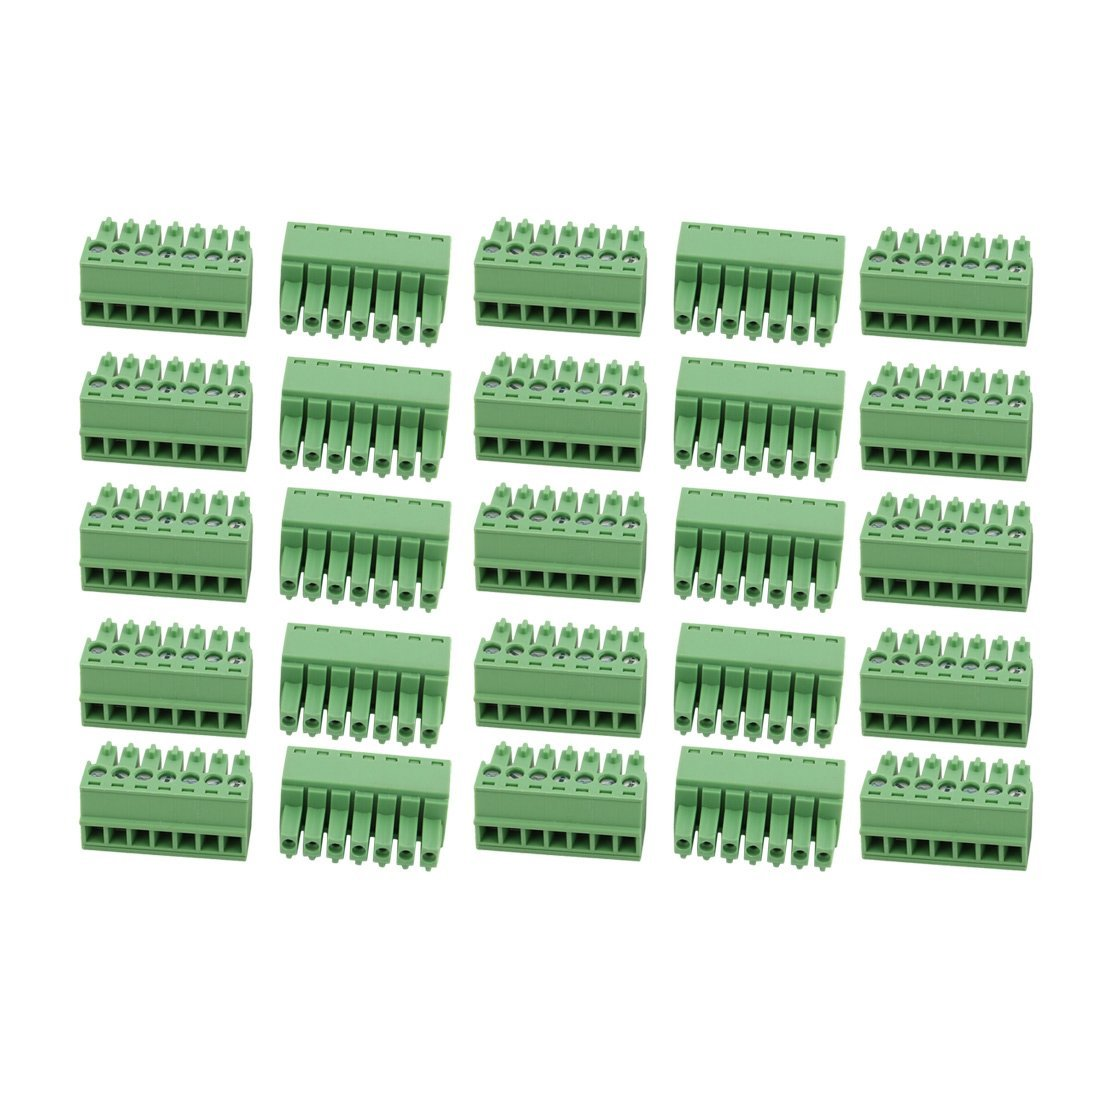 uxcell 25Pcs AC 300V 8A 3.5mm Pitch 7P Terminal Block Wire Connector for PCB Mounting